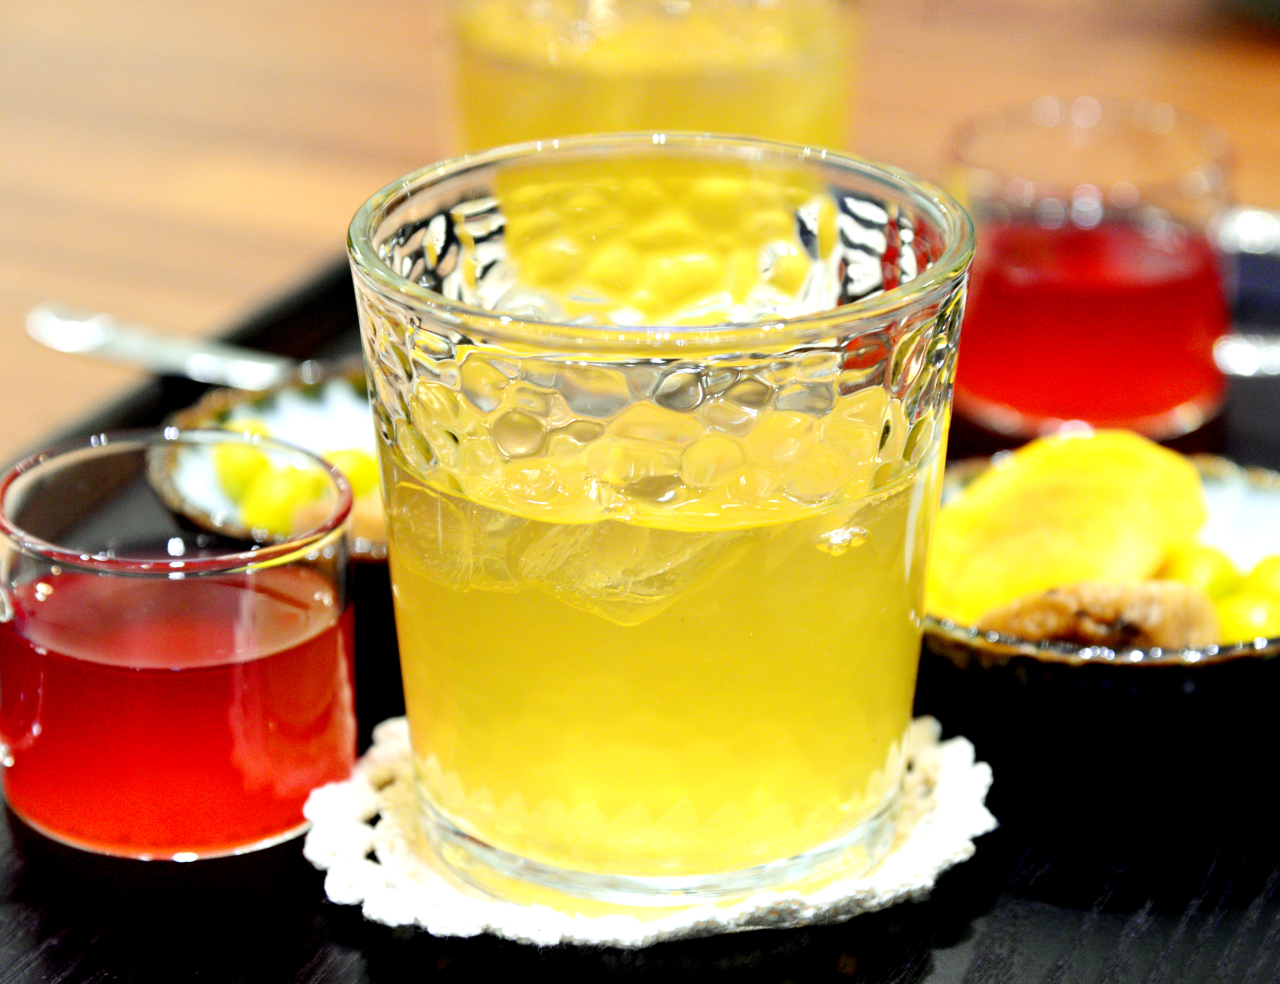 Oga Teahouse's Chinese wild peach tea, according to manager Oh Ki-hwan, is believed to be good for the throat. (Park Hyun-koo/The Korea Herald)